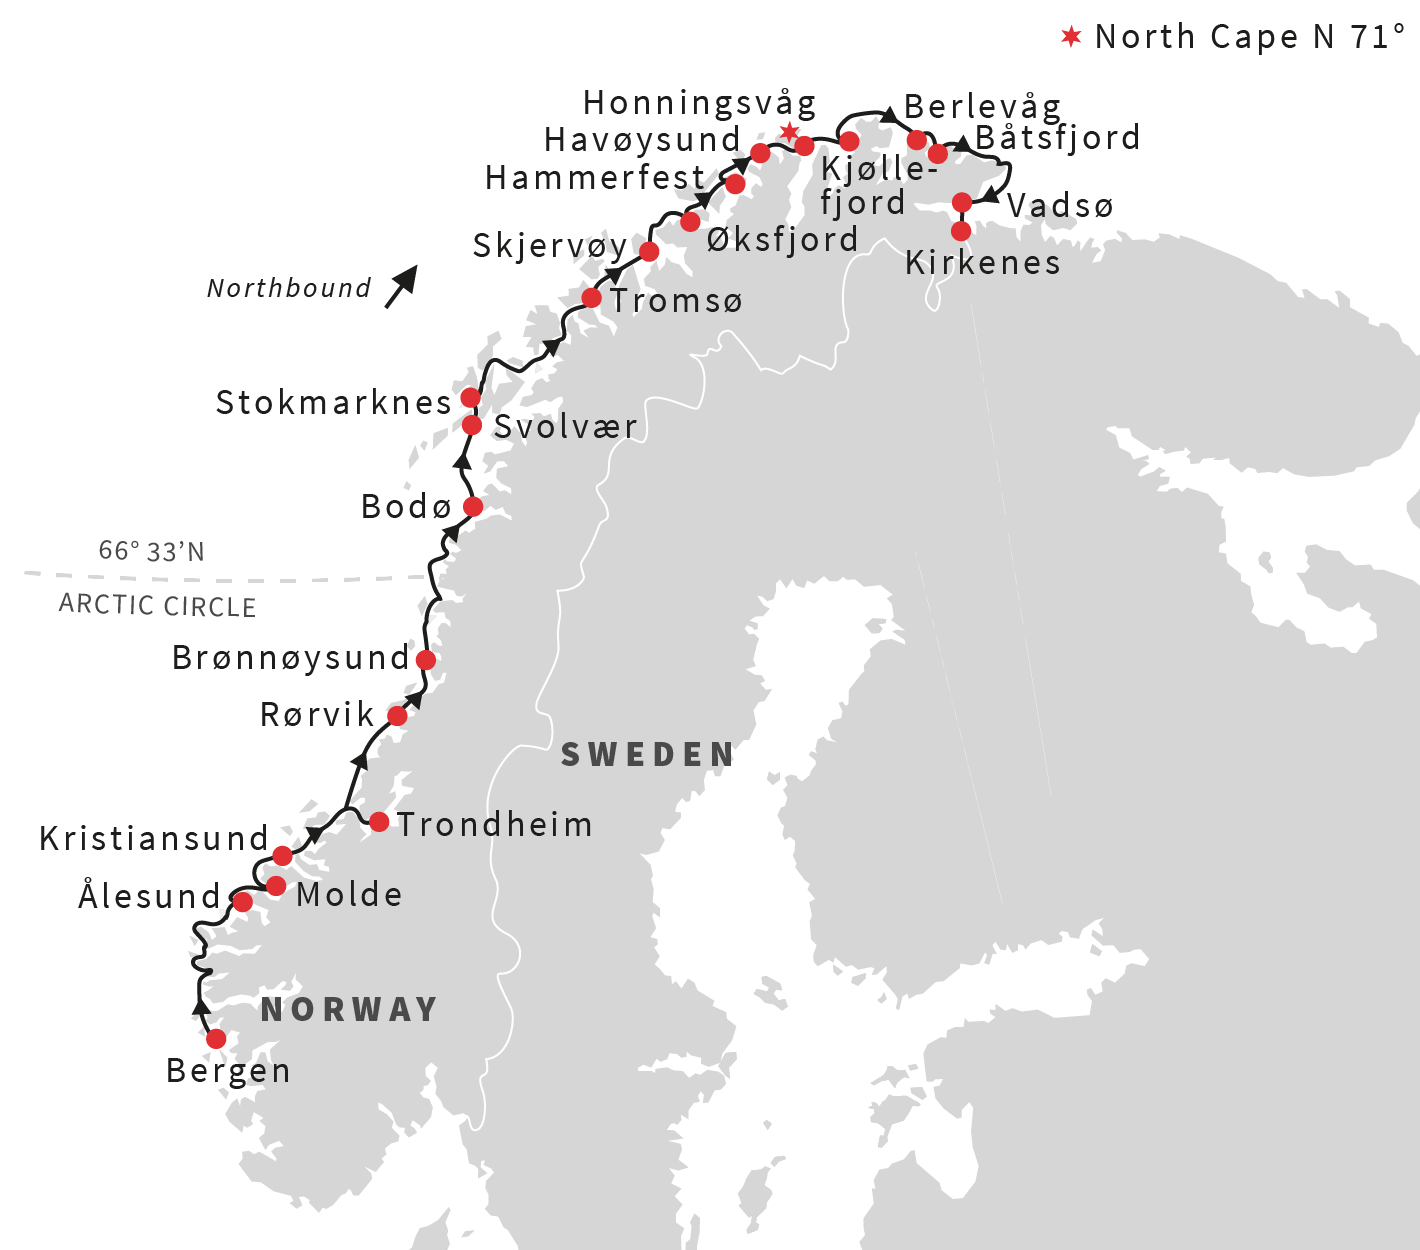 Map for Classic Norway Voyage North